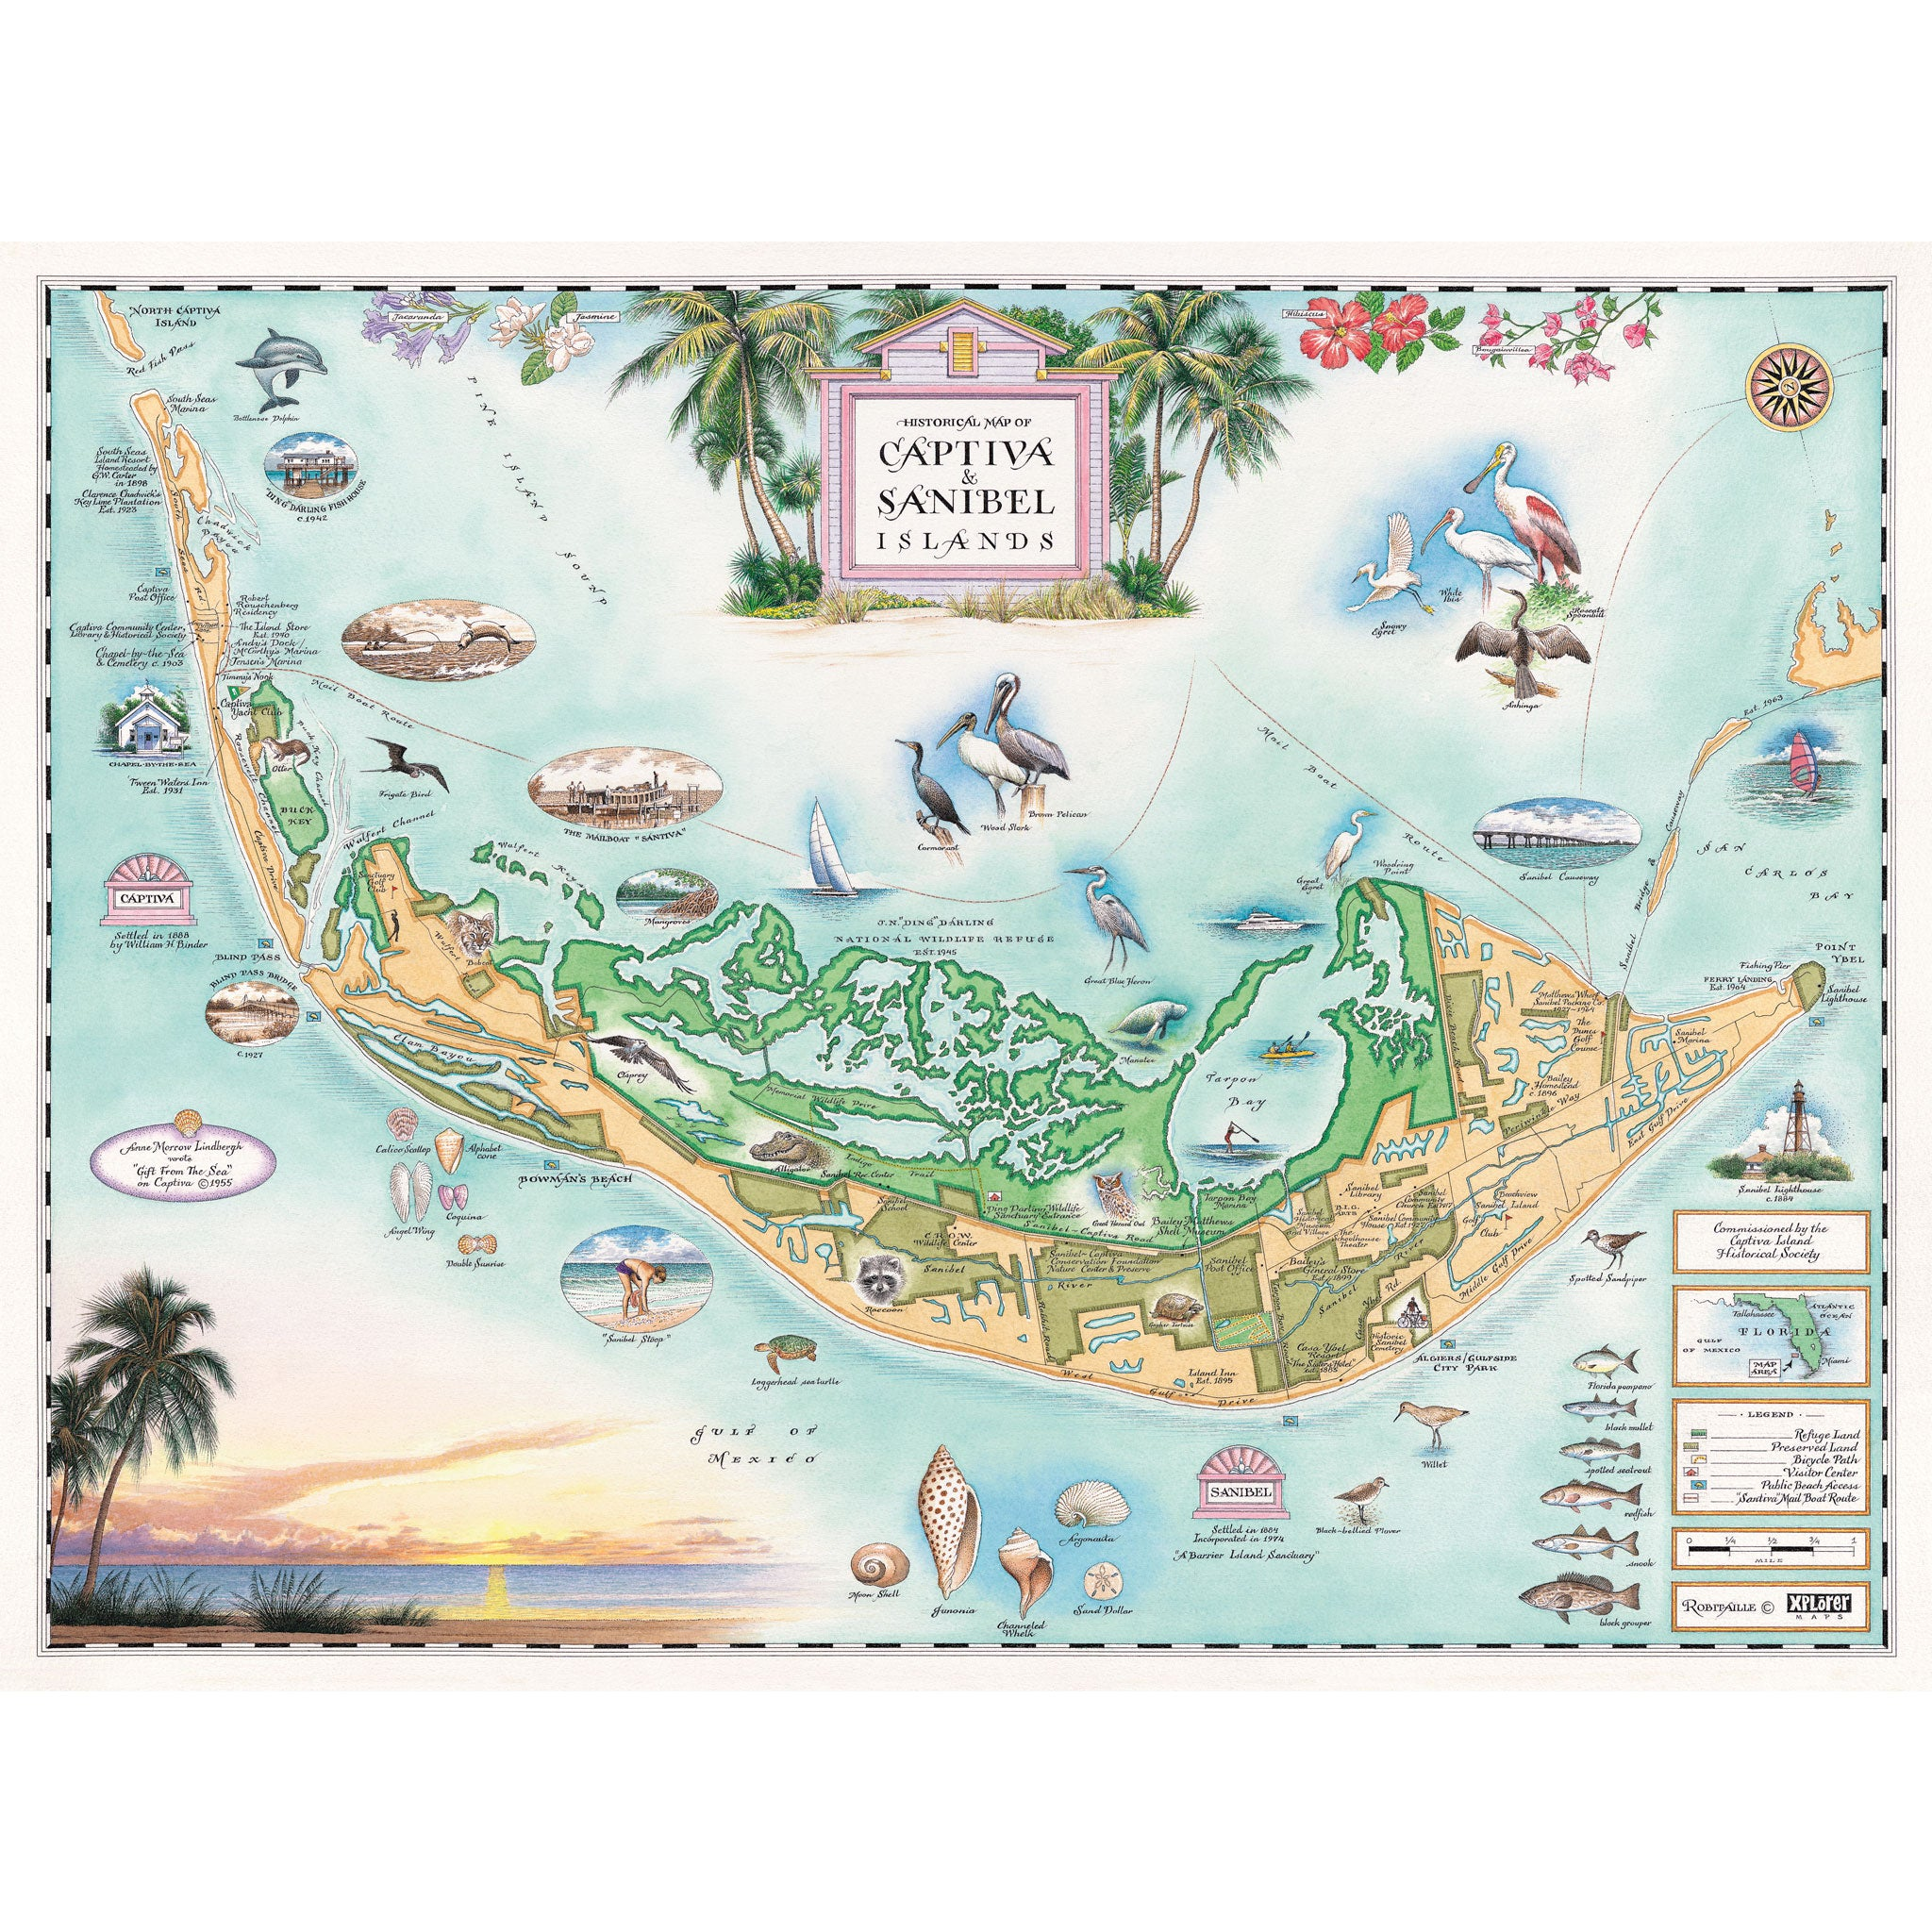 sanibelcaptiva islands map  xplorer maps - sanibelcaptiva islands map